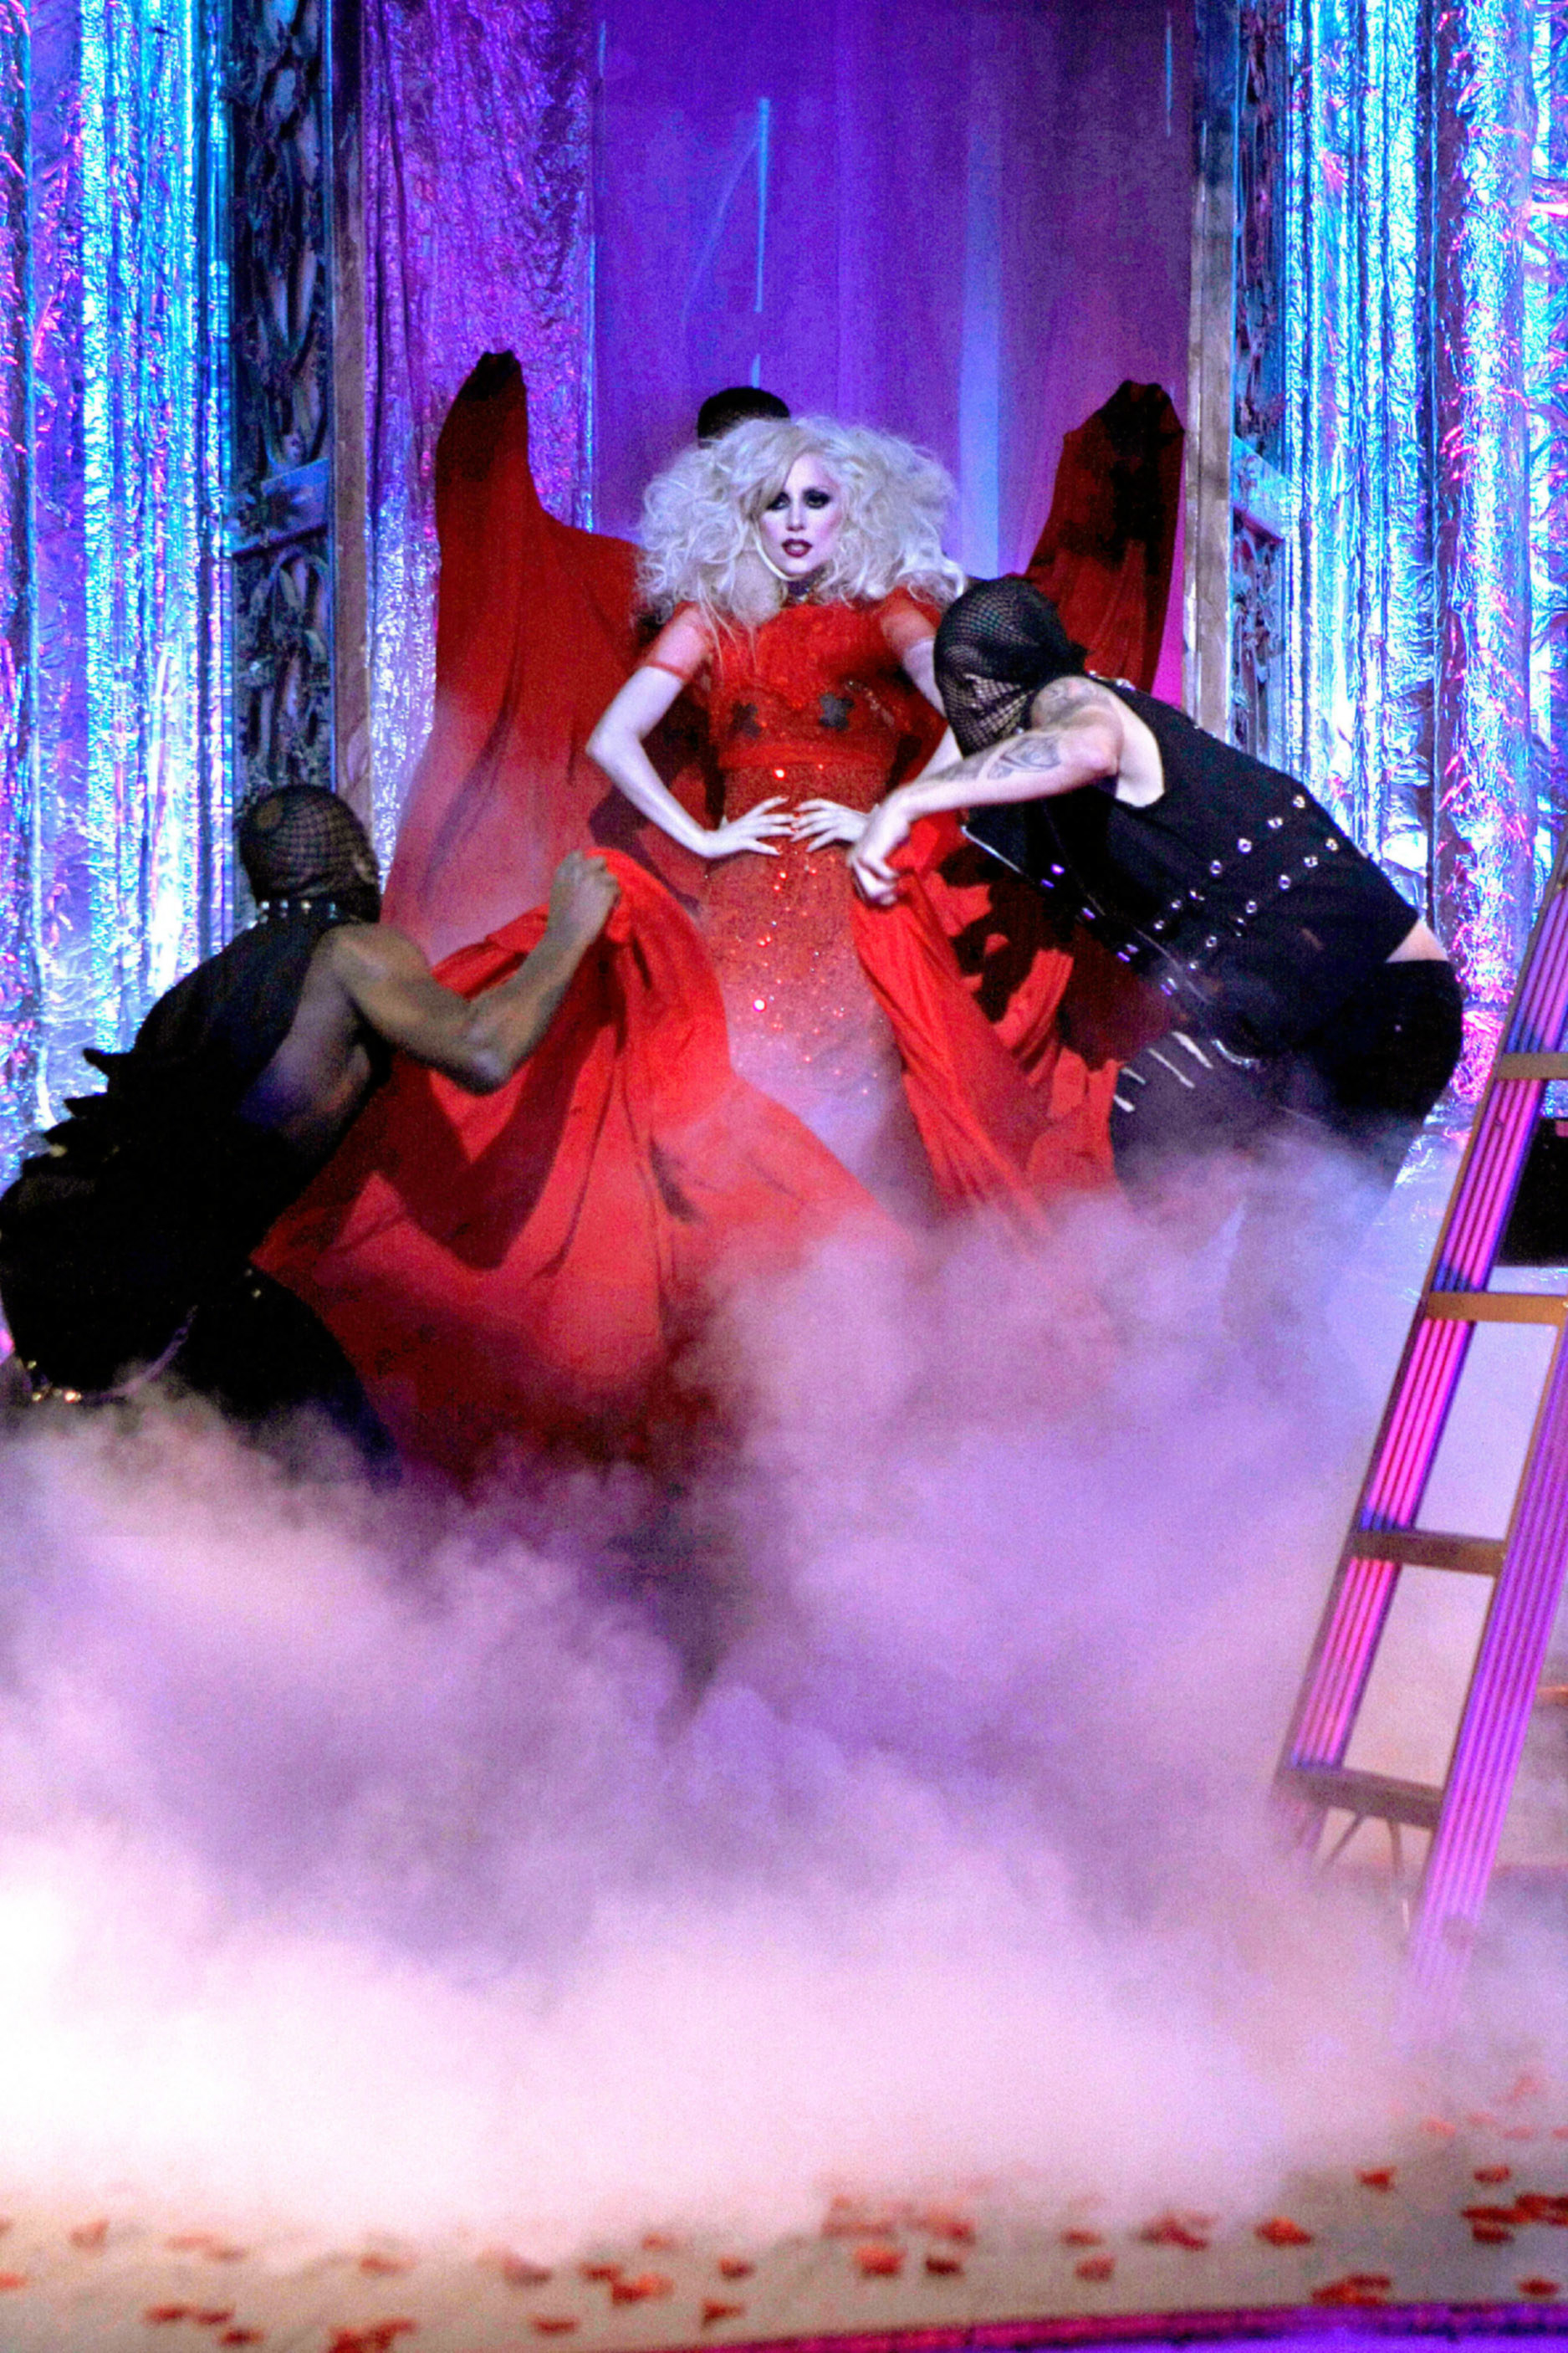 Lady Gaga performing on stage on Gossip Girl